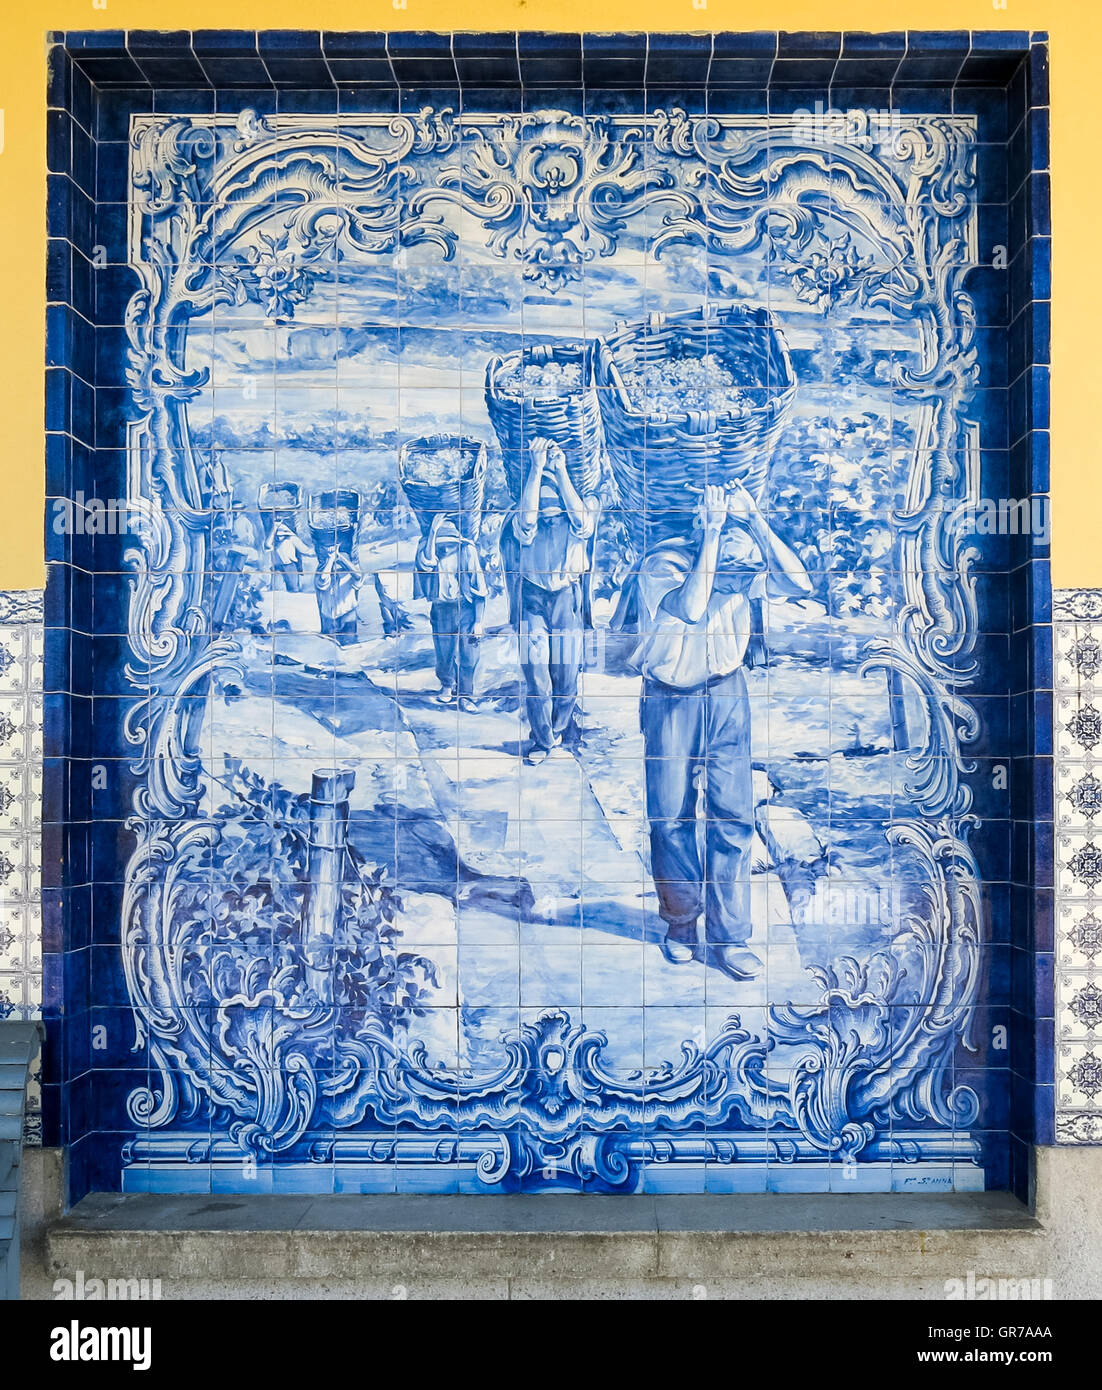 Panel with azulejos tilework on train station of Pocinho in River Douro valley near Spanish border in Portugal - Stock Image